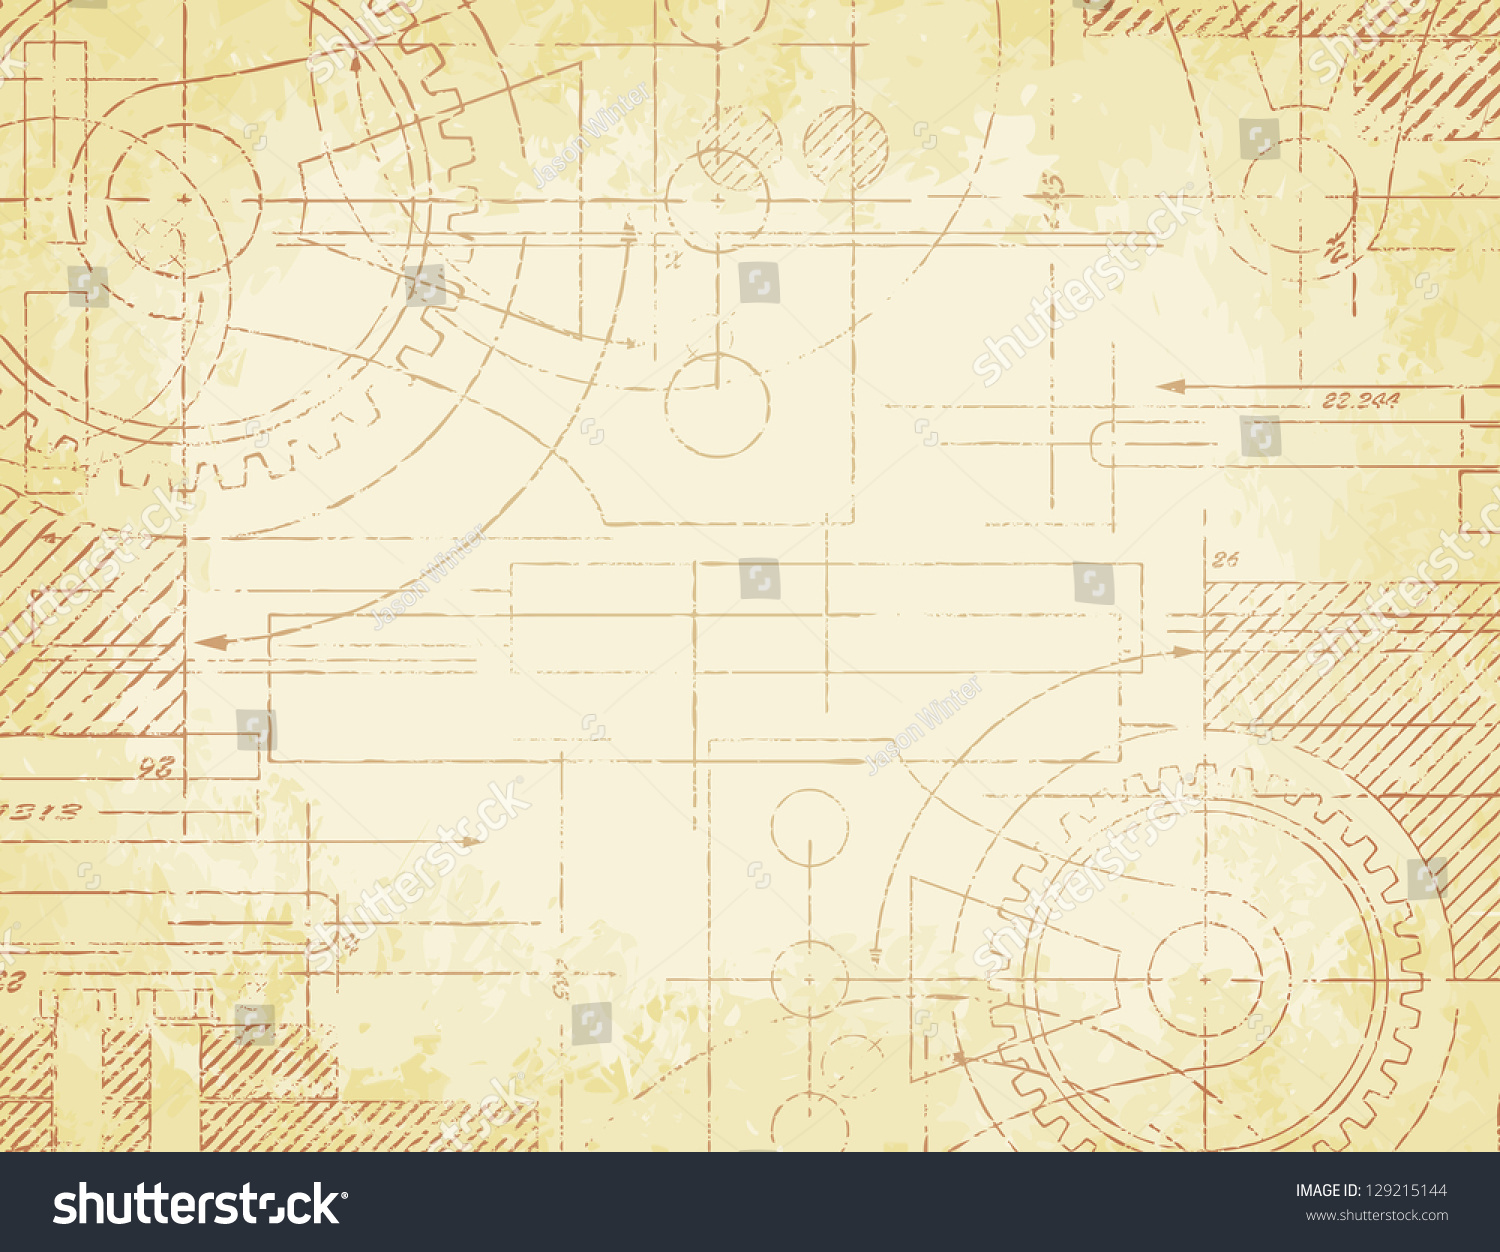 Grungy old technical blueprint illustration on stock illustration grungy old technical blueprint illustration on faded paper background malvernweather Images